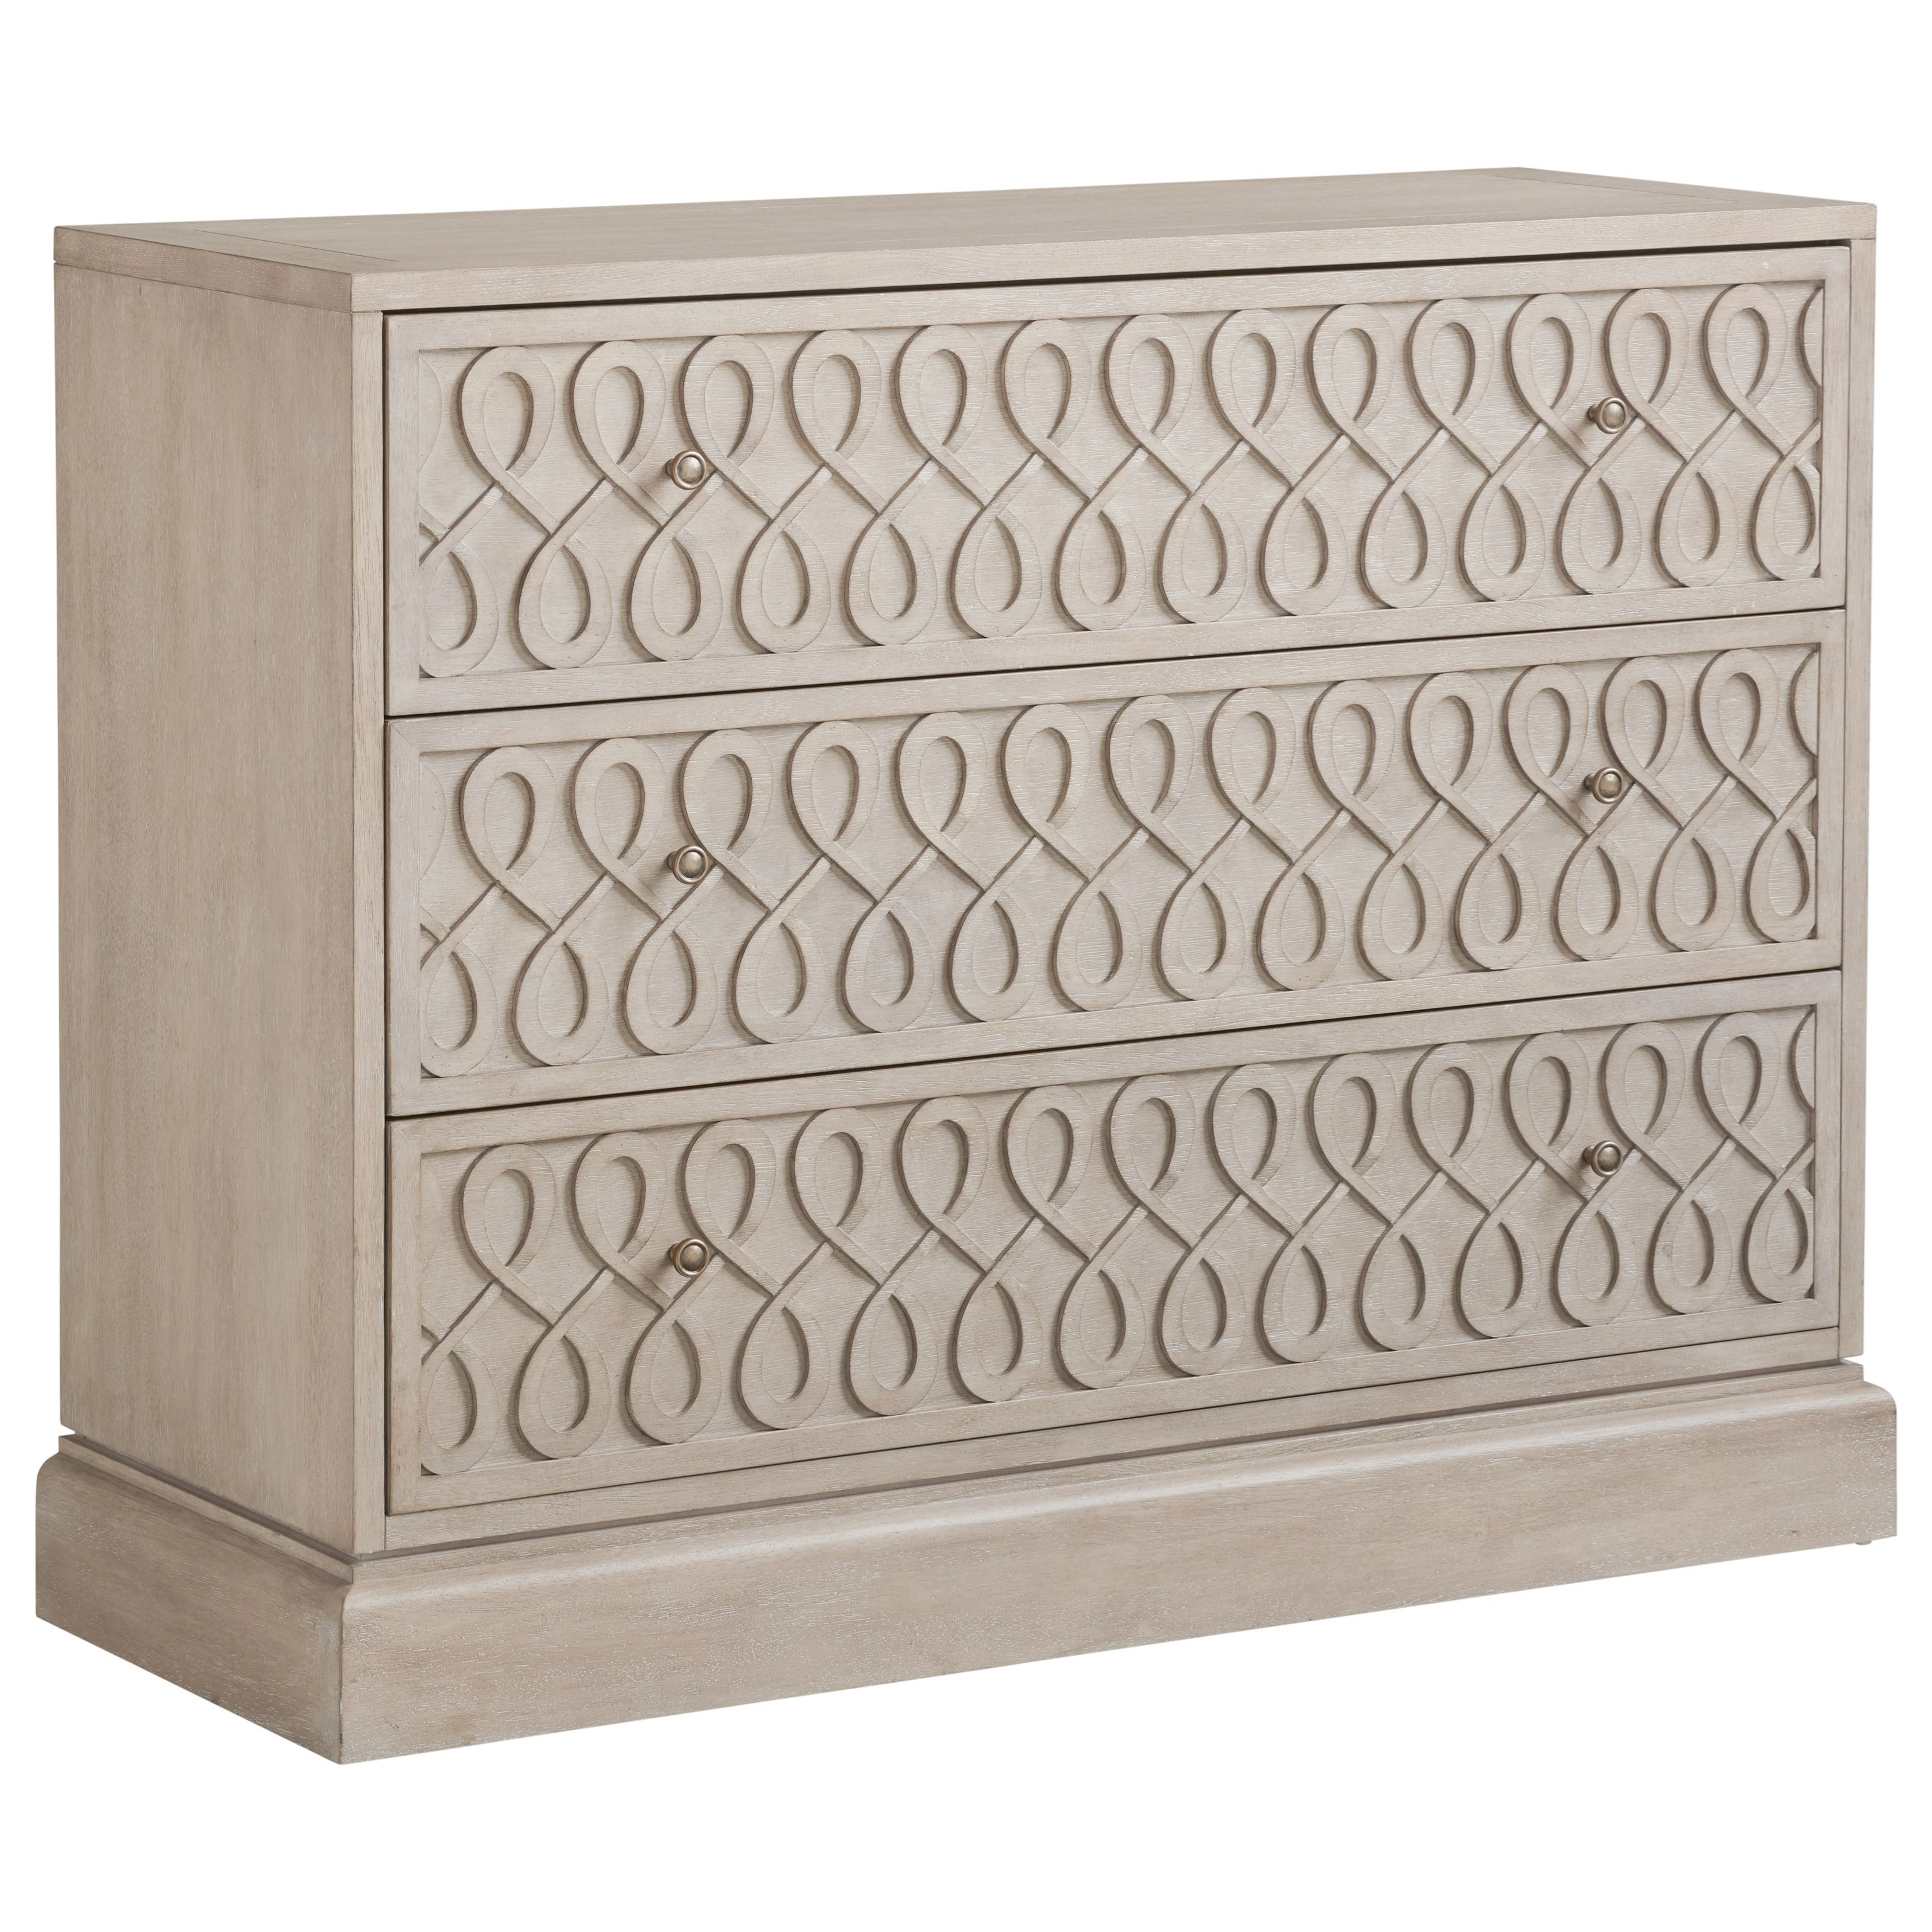 Malibu Adamson Hall Chest by Barclay Butera at Baer's Furniture